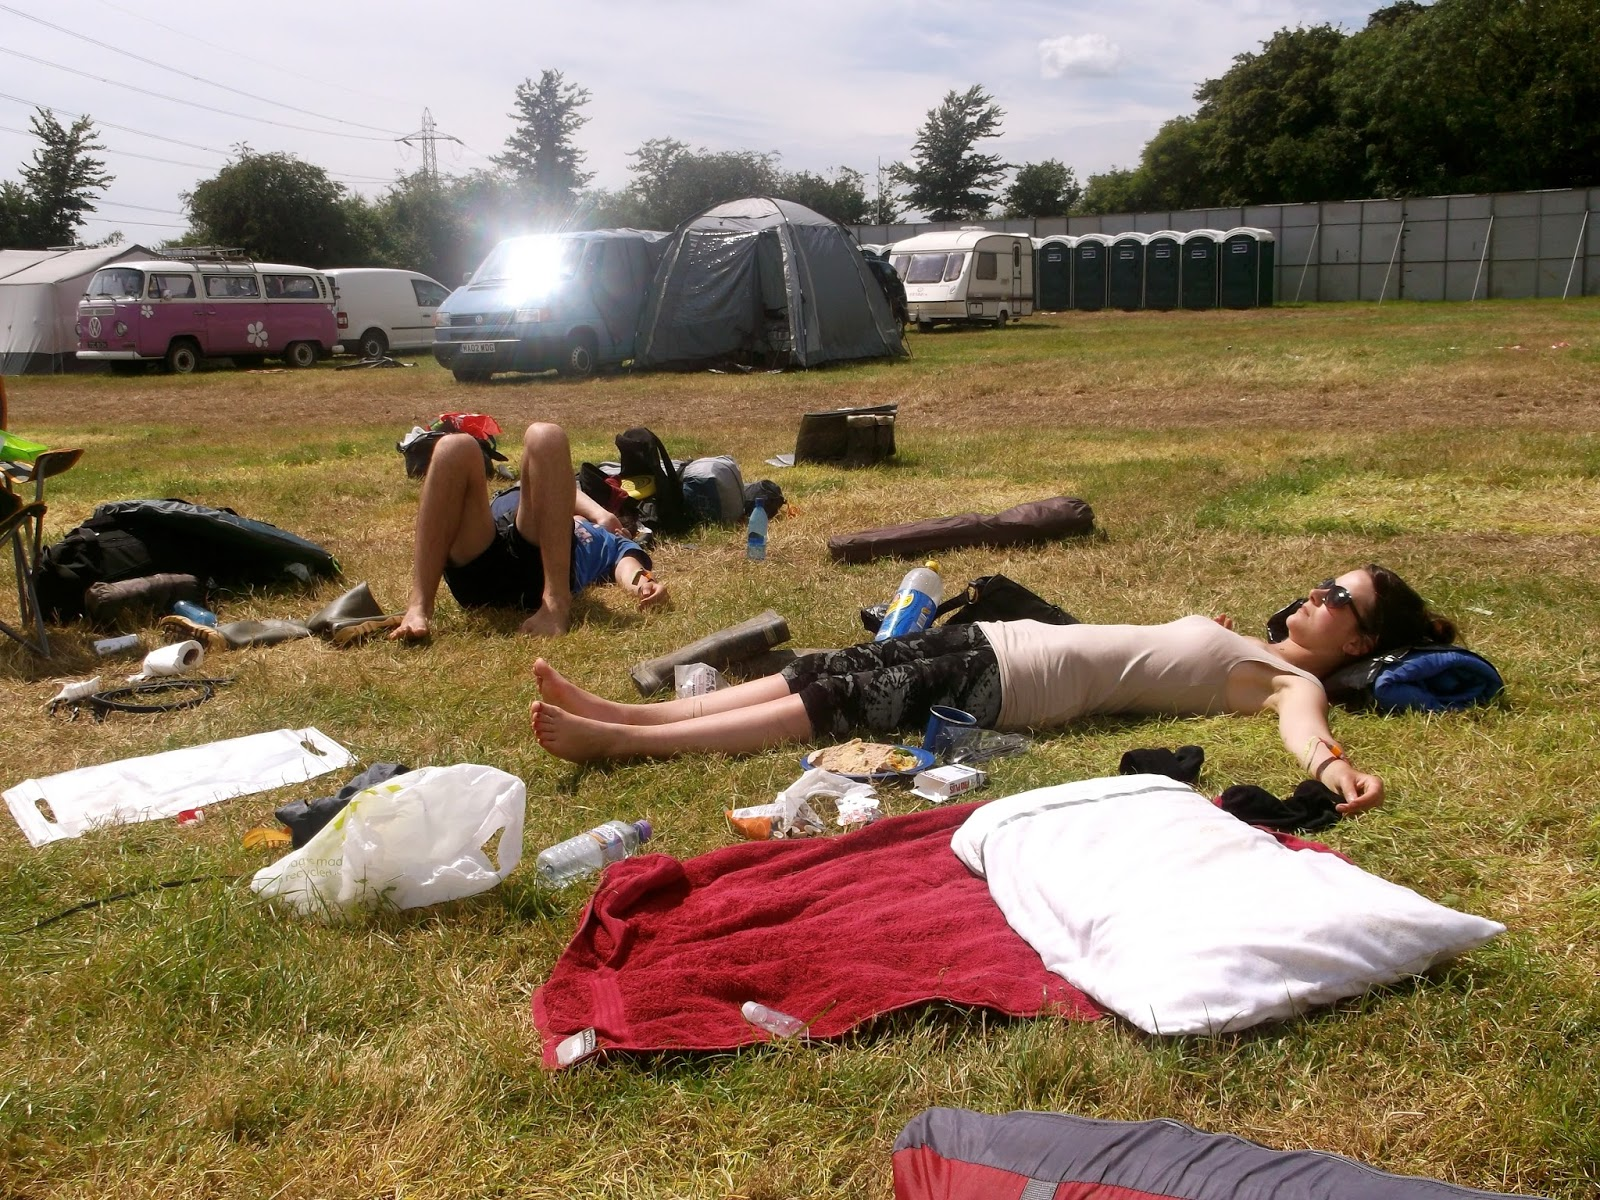 Exhausted campers at Glastonbury festival